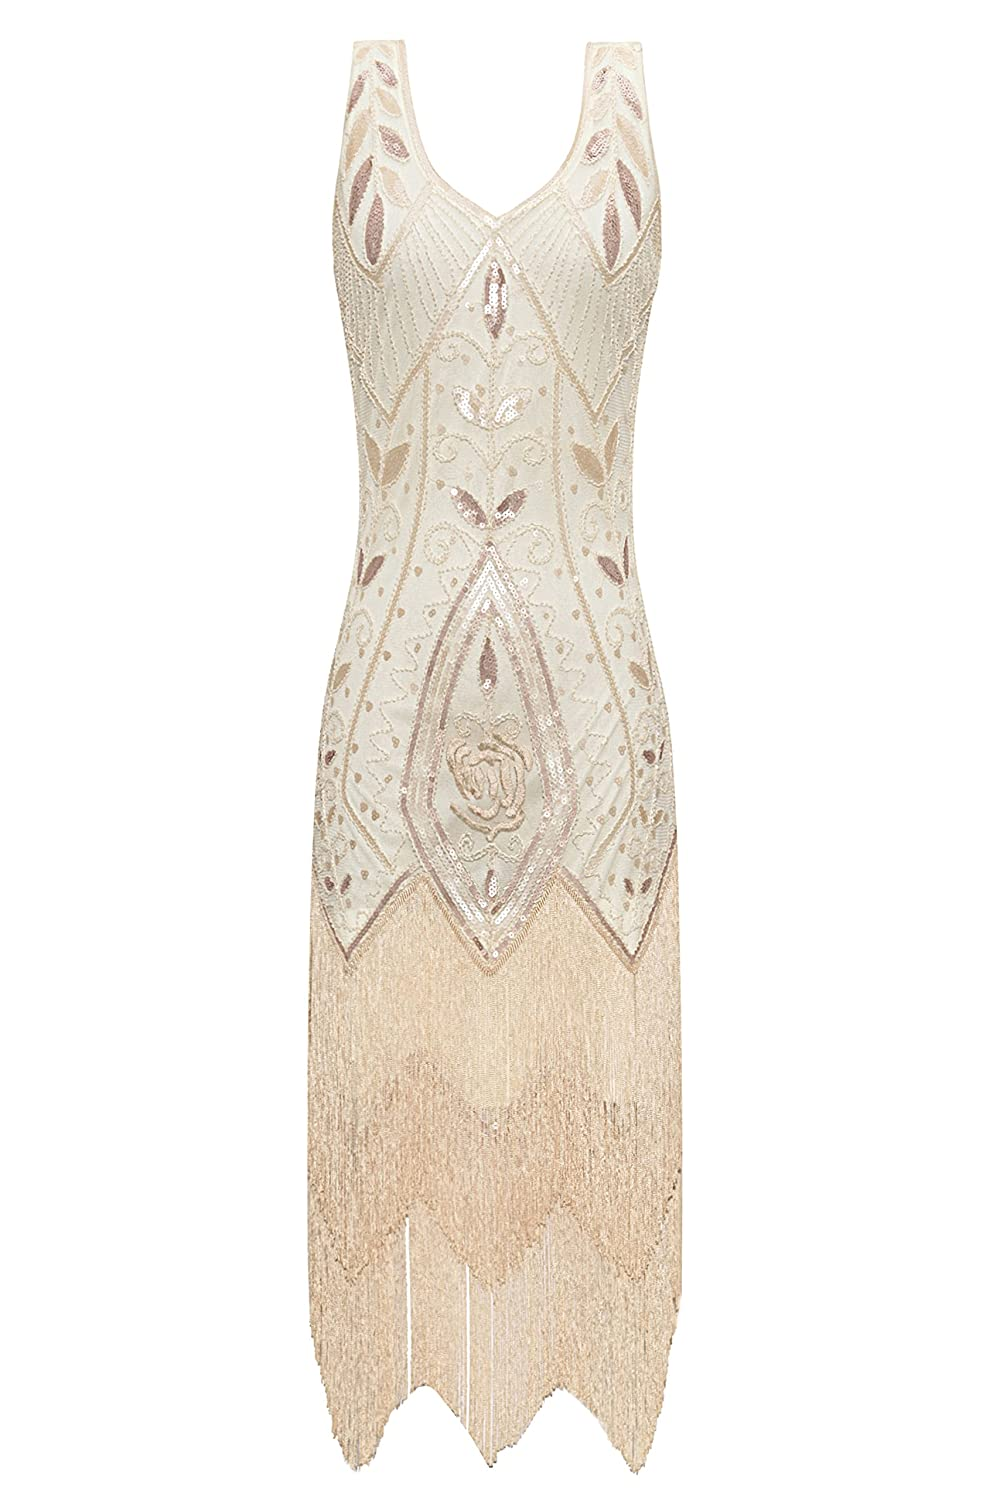 1920s Downton Abbey Dresses Metme Womens 1920s Flapper Fringe Beaded Great Gatsby Party Dress £48.99 AT vintagedancer.com